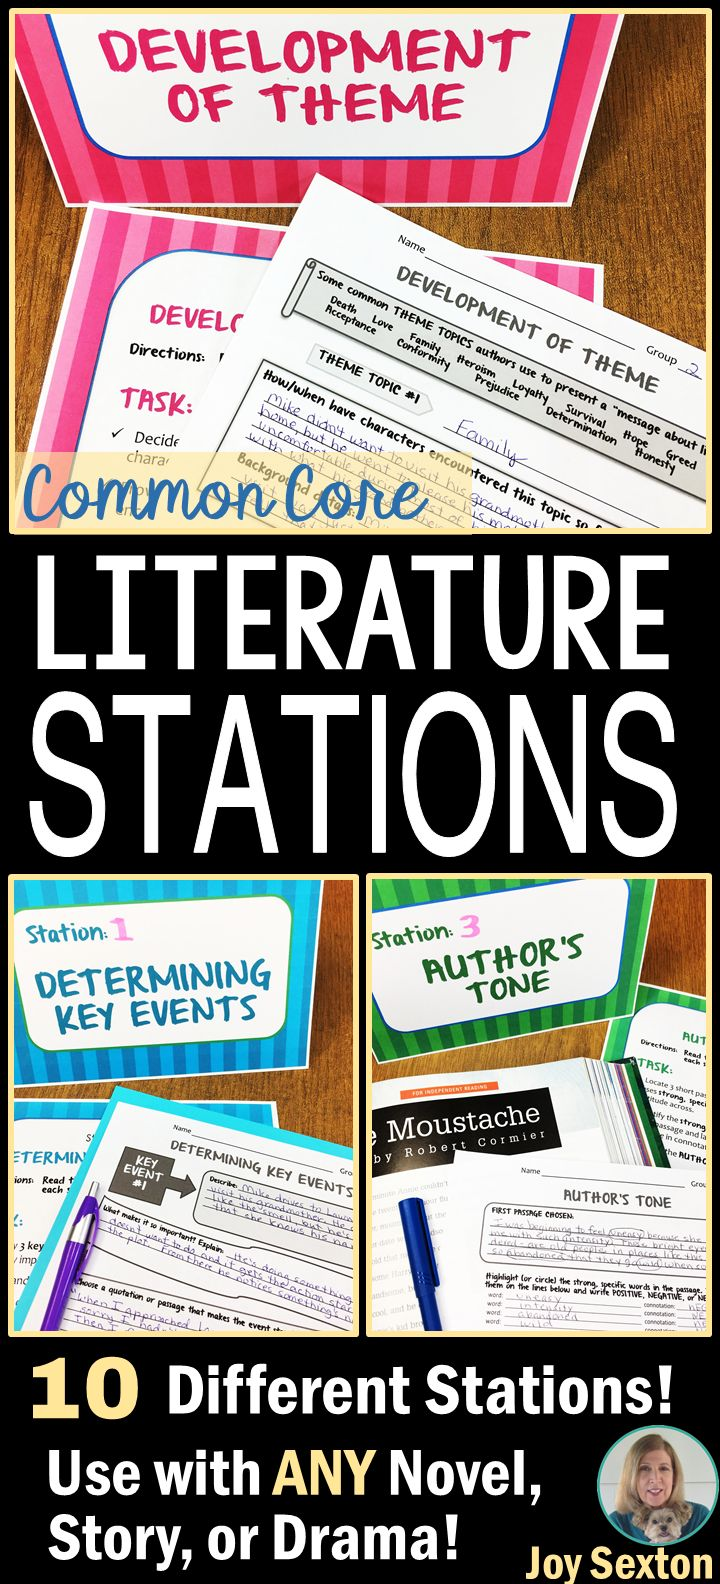 Motivate your students with collaborative station work centered on Common Core topics using ANY novel, story, or drama! You get 10 different stations with detailed task cards and inviting student handouts for each. Great for differentiation! #MiddleSchoolStations #MiddleSchoolEnglish #ELAStations